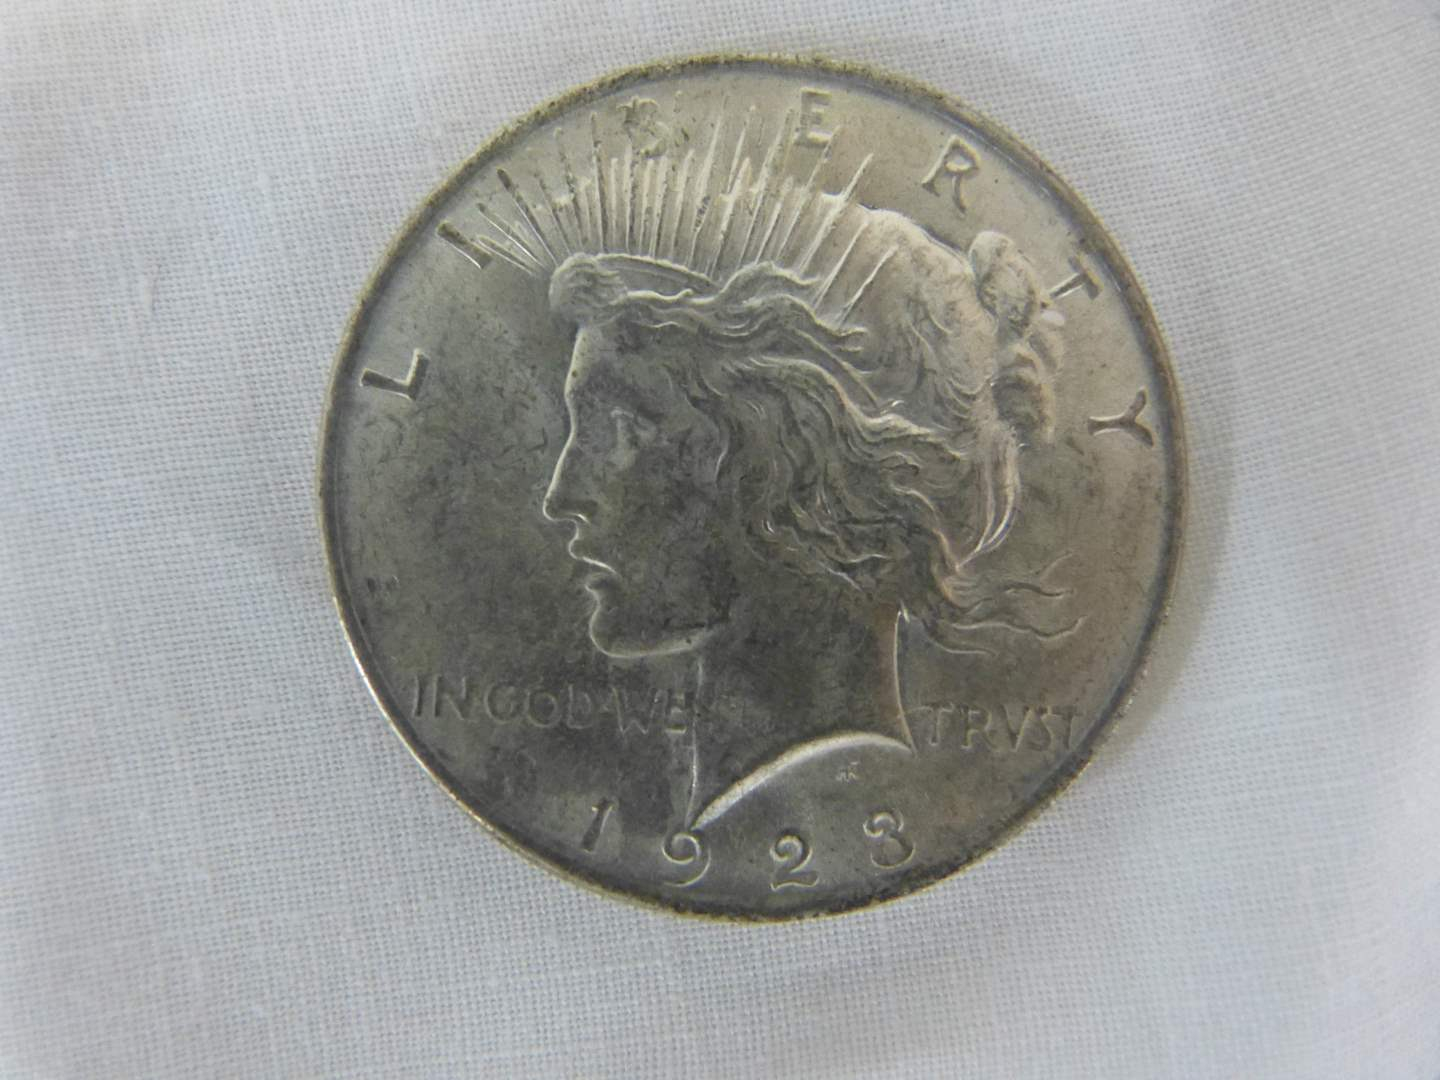 Lot # 103 1923 US SILVER Peace DOLLAR (main image)